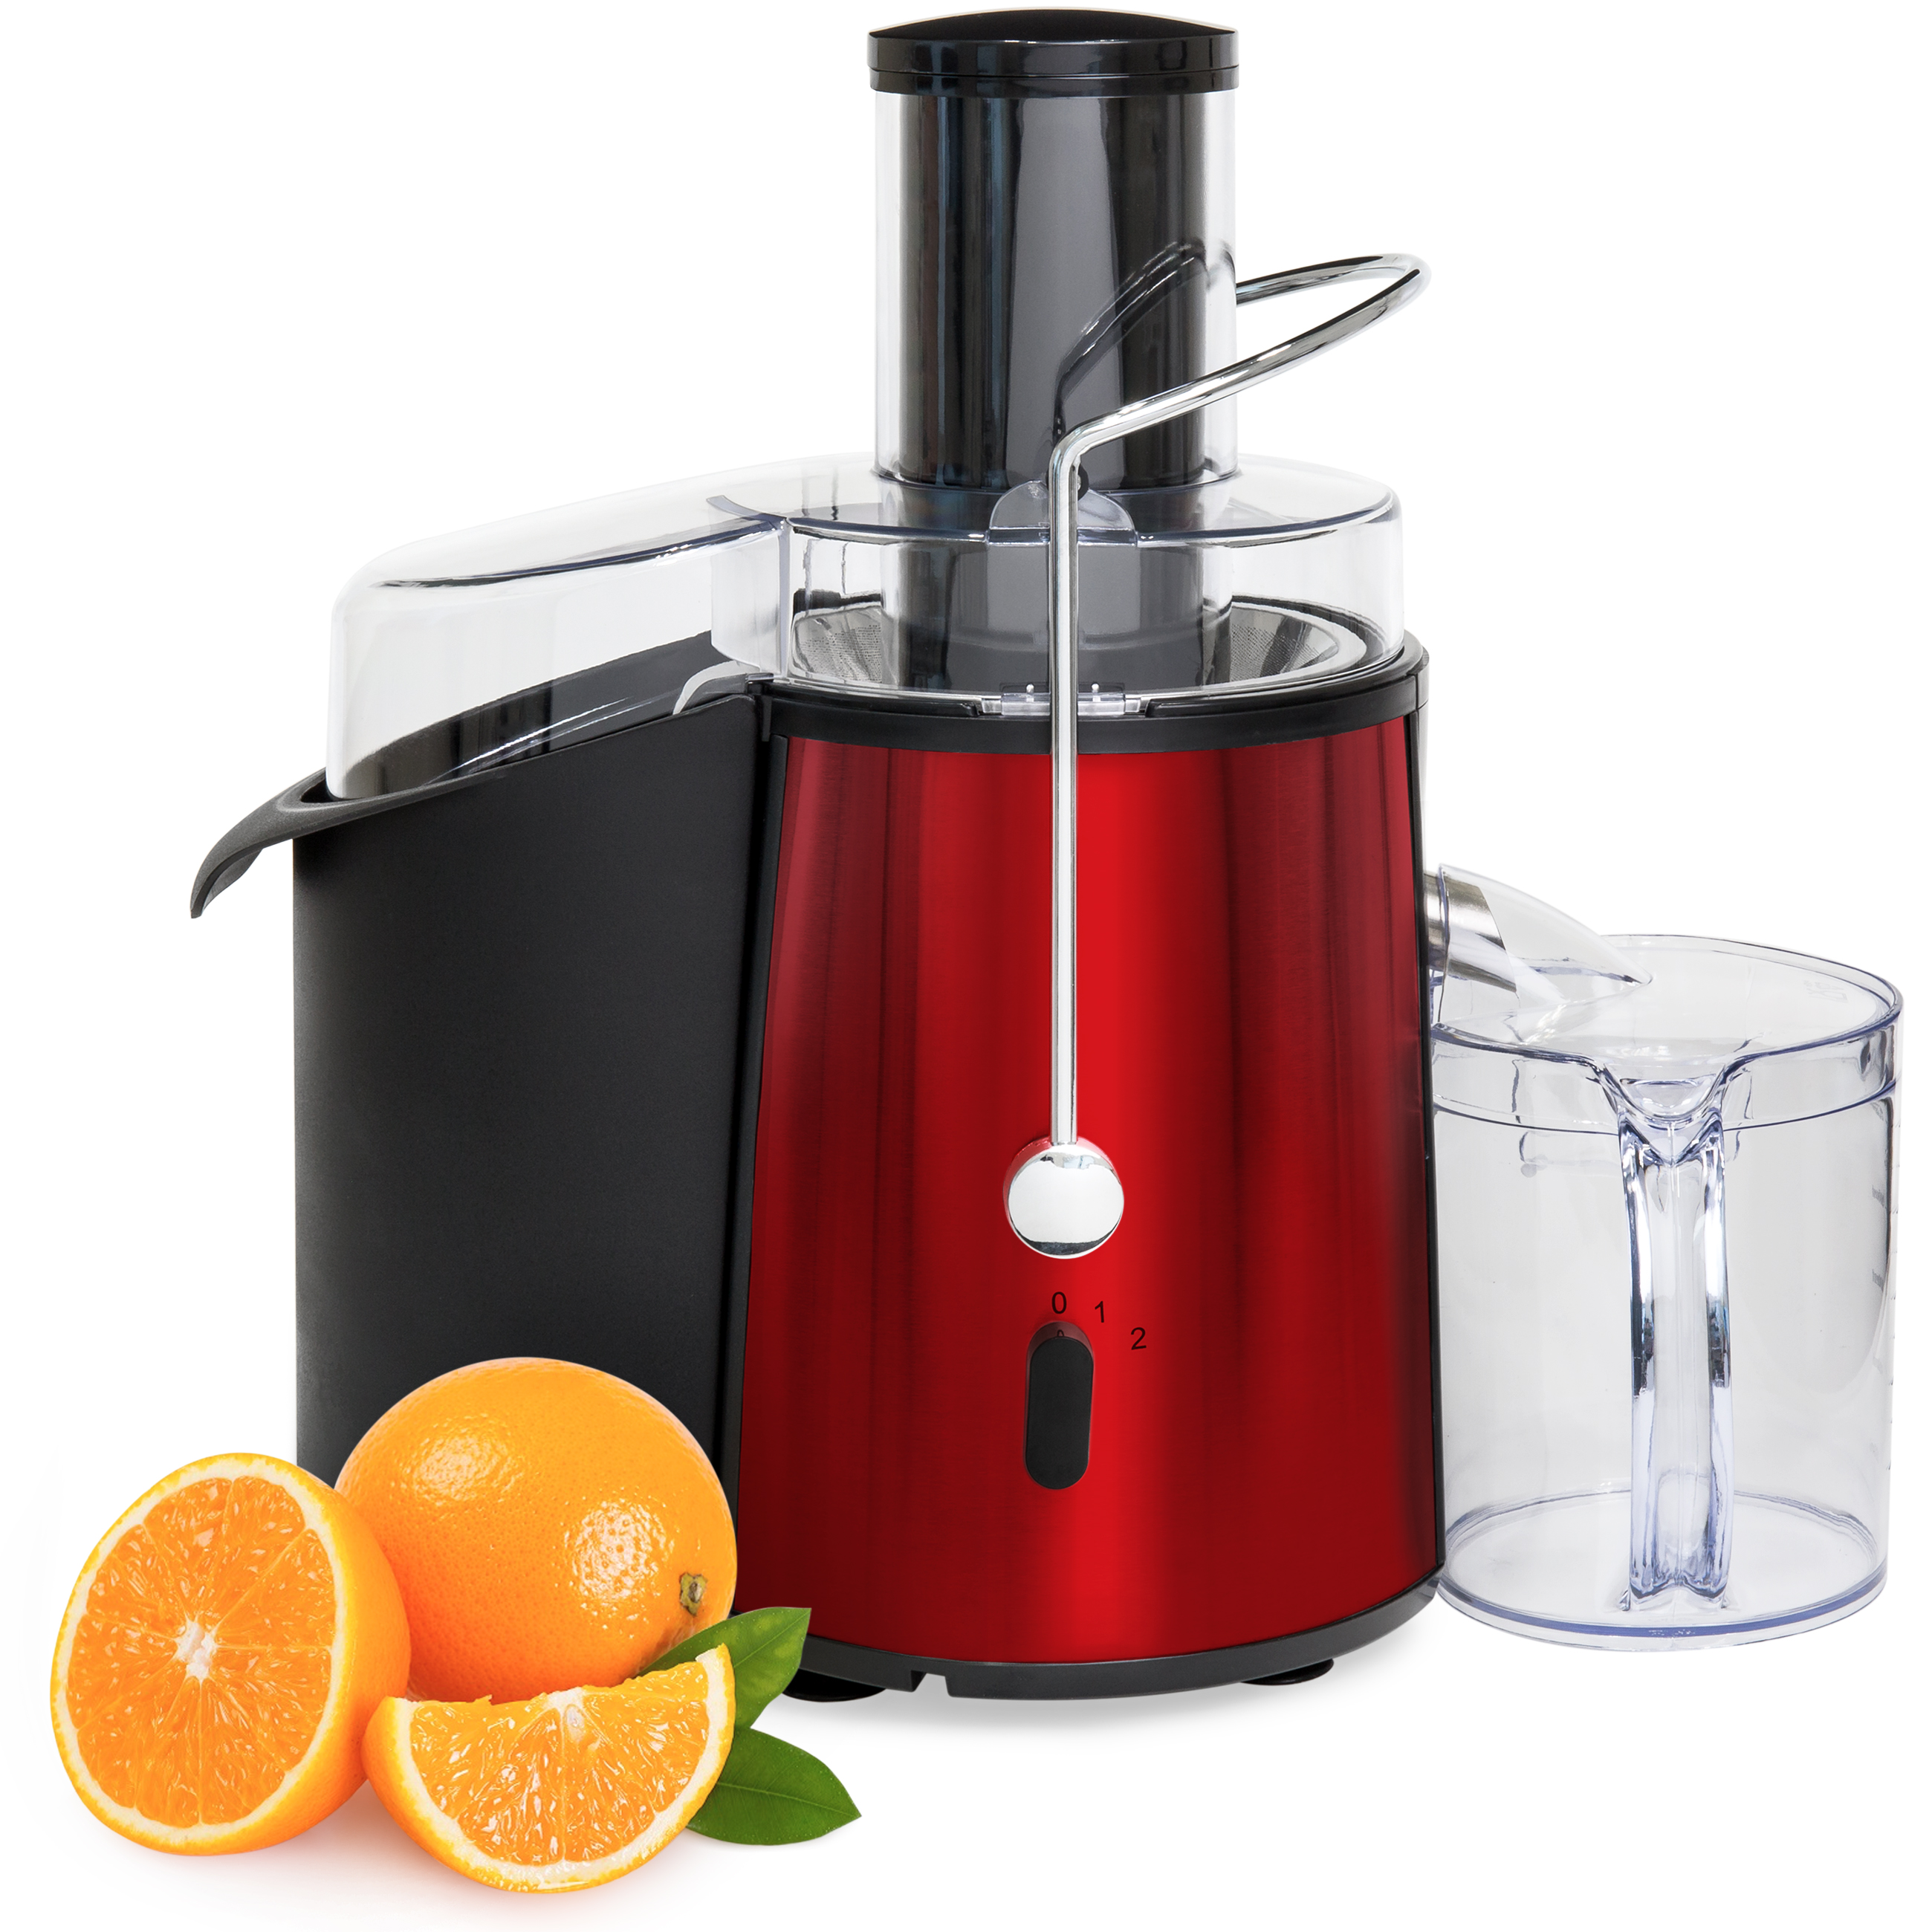 Best Choice Products 700 Watt 2 Speed Etl Certified Fruit Vegetable Power Juicer (Red) by Best Choice Products